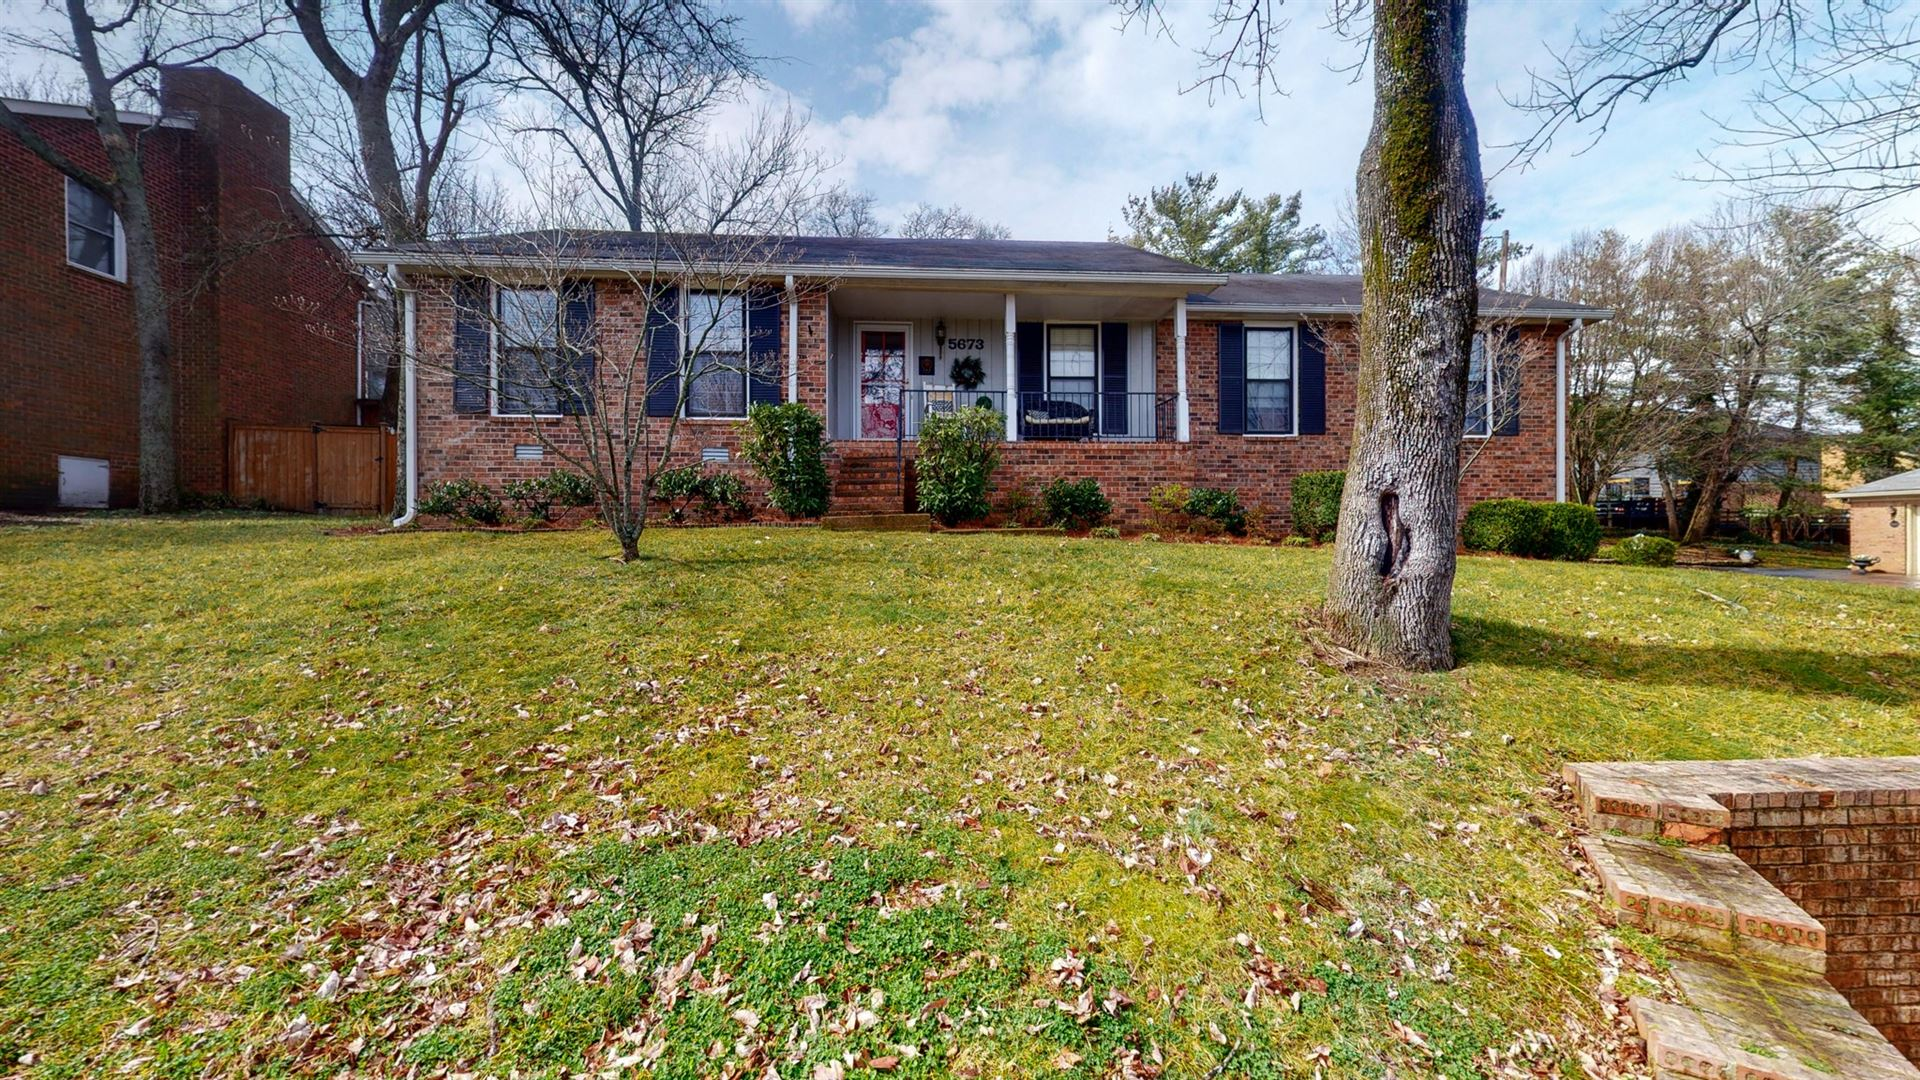 5673 Oakes Dr, Brentwood, TN 37027 - MLS#: 2257288